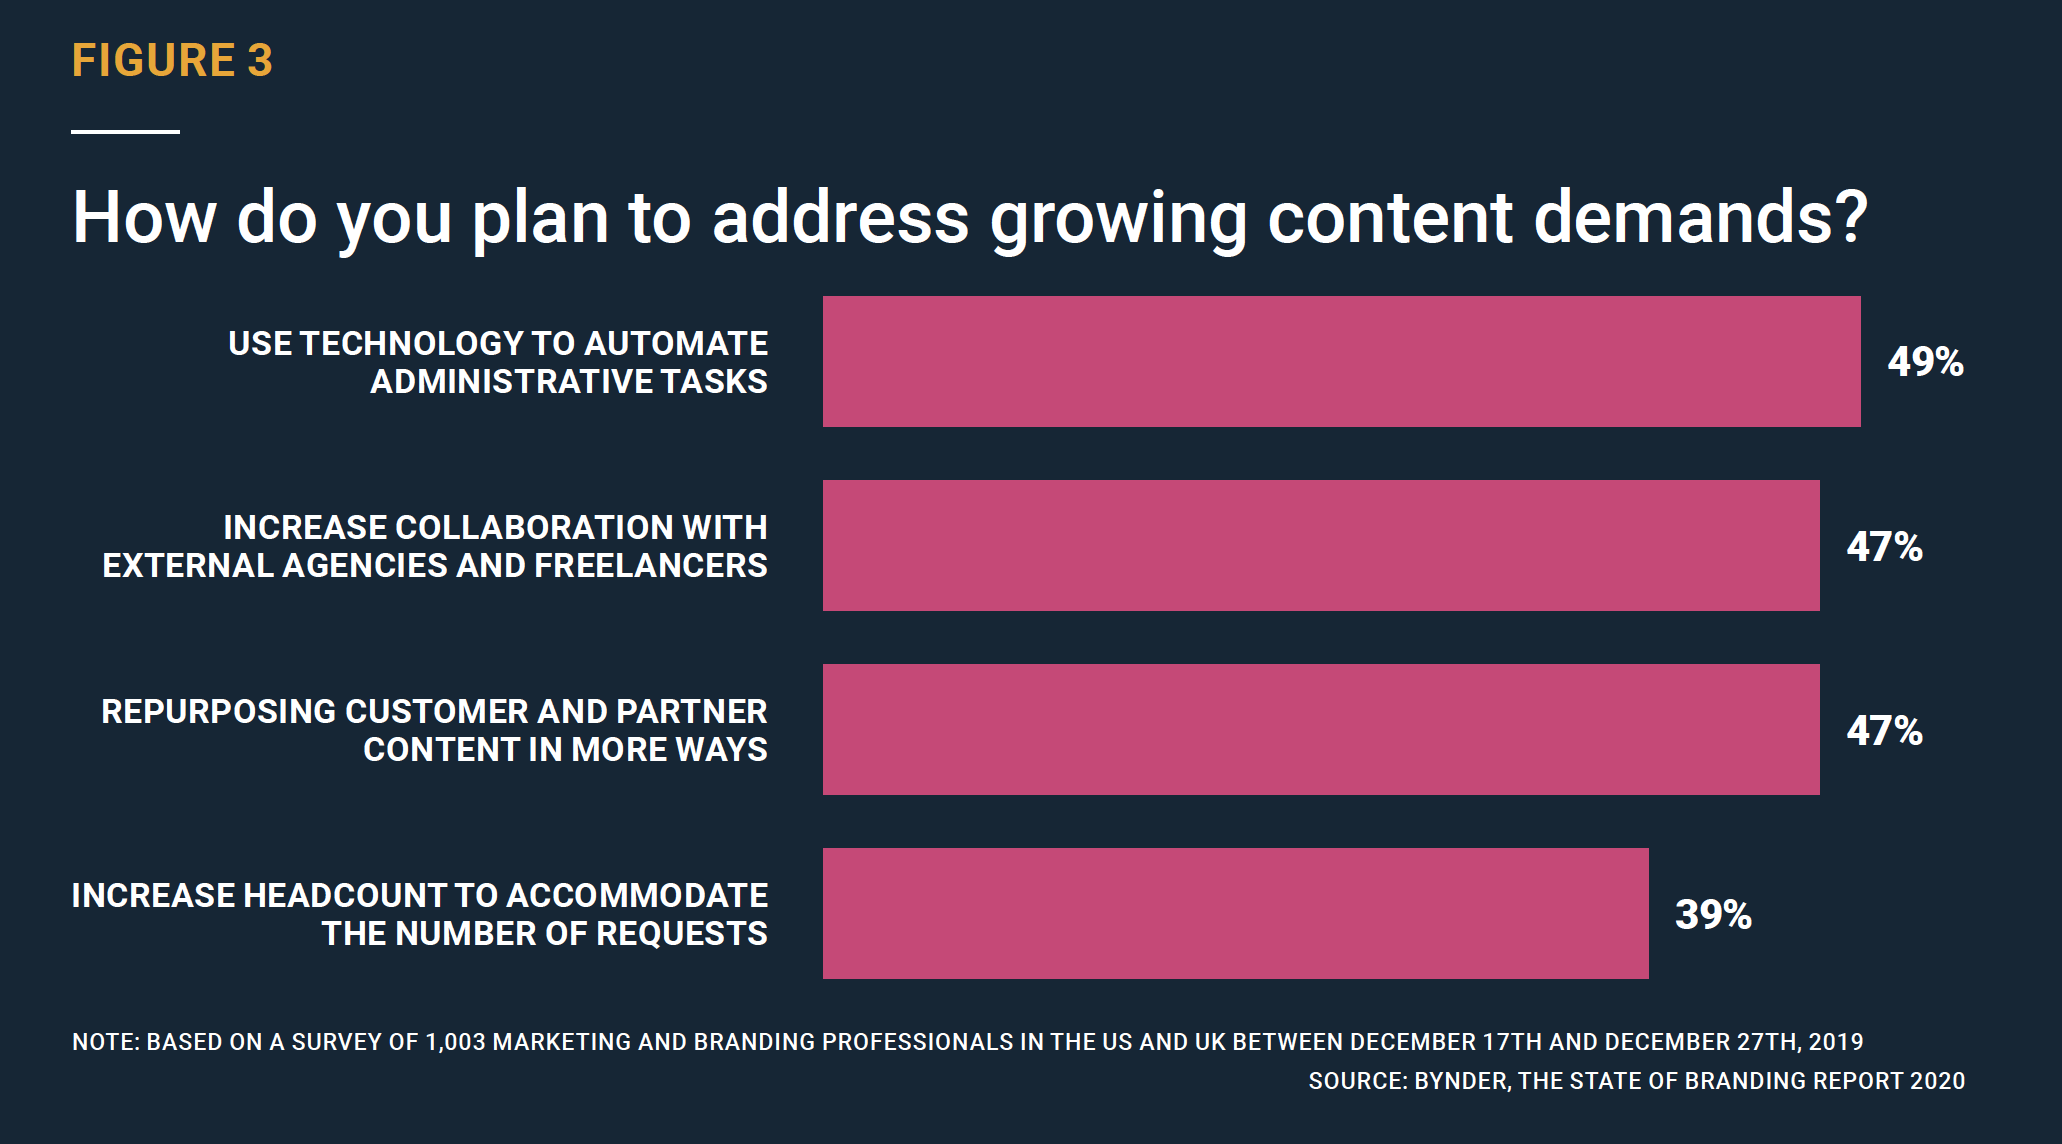 How do you plan to address growing content demands?